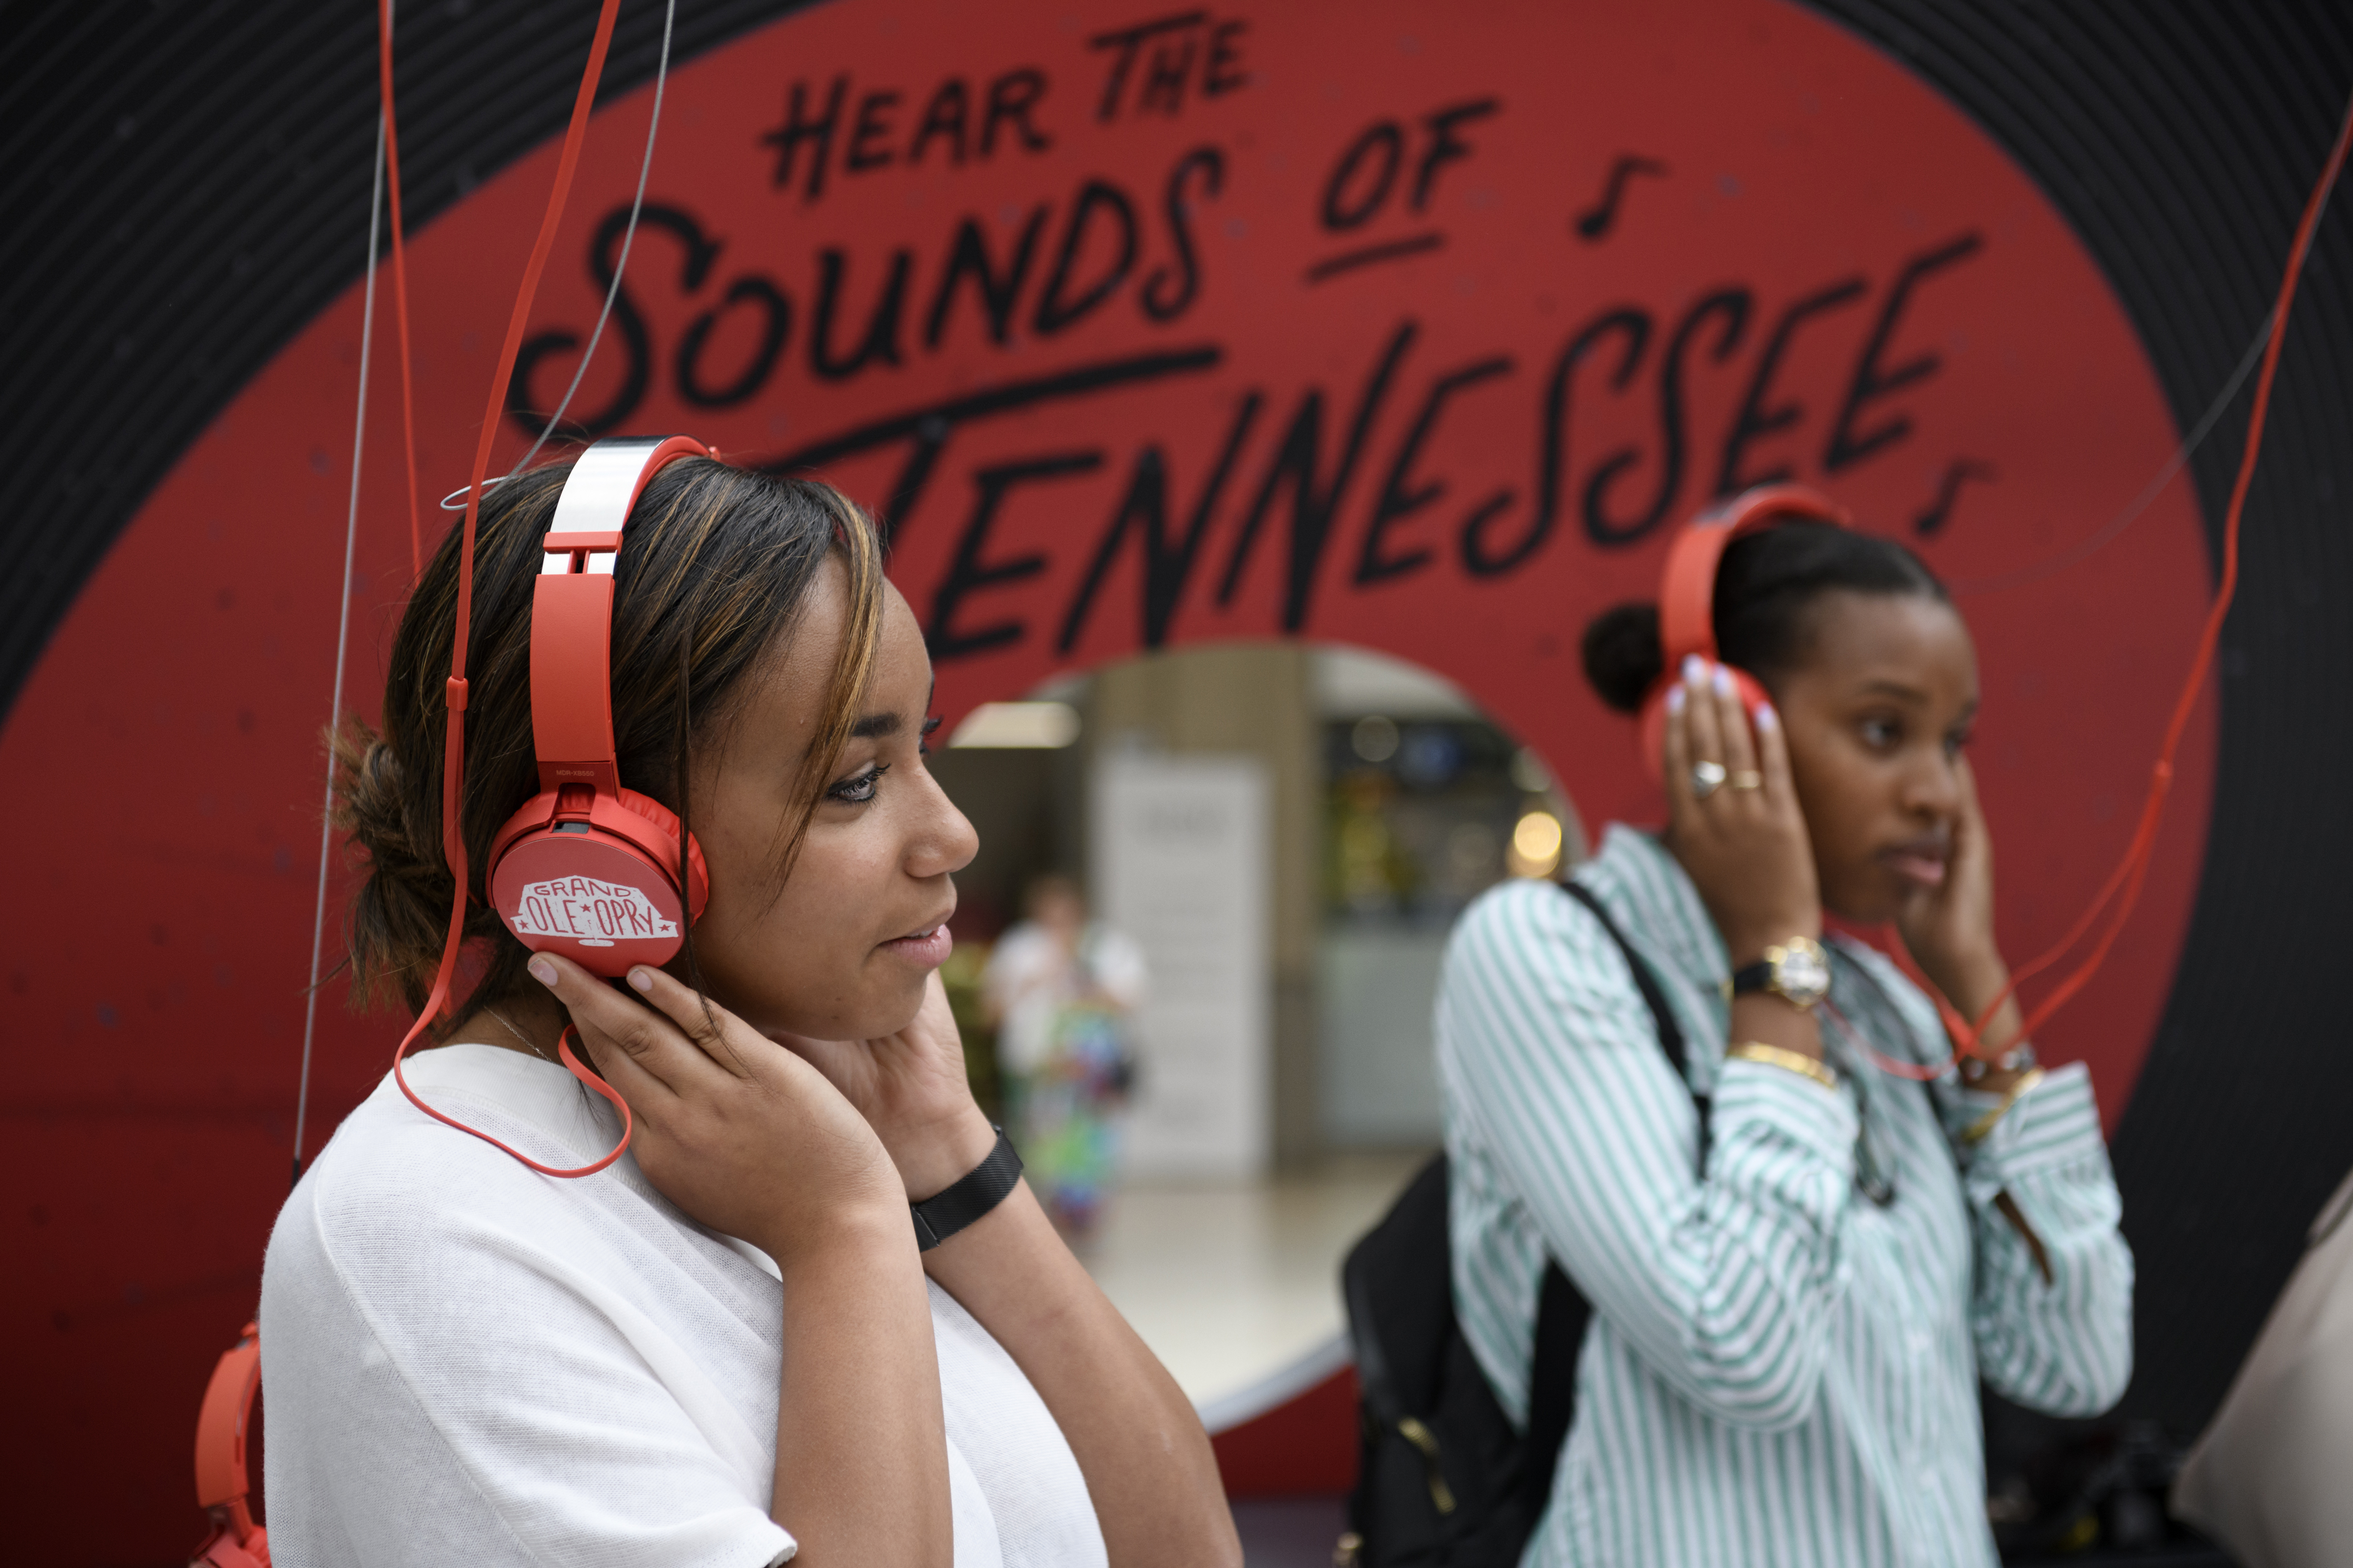 """Sights & Sounds of Tennessee"" Fill London's Waterloo Station"